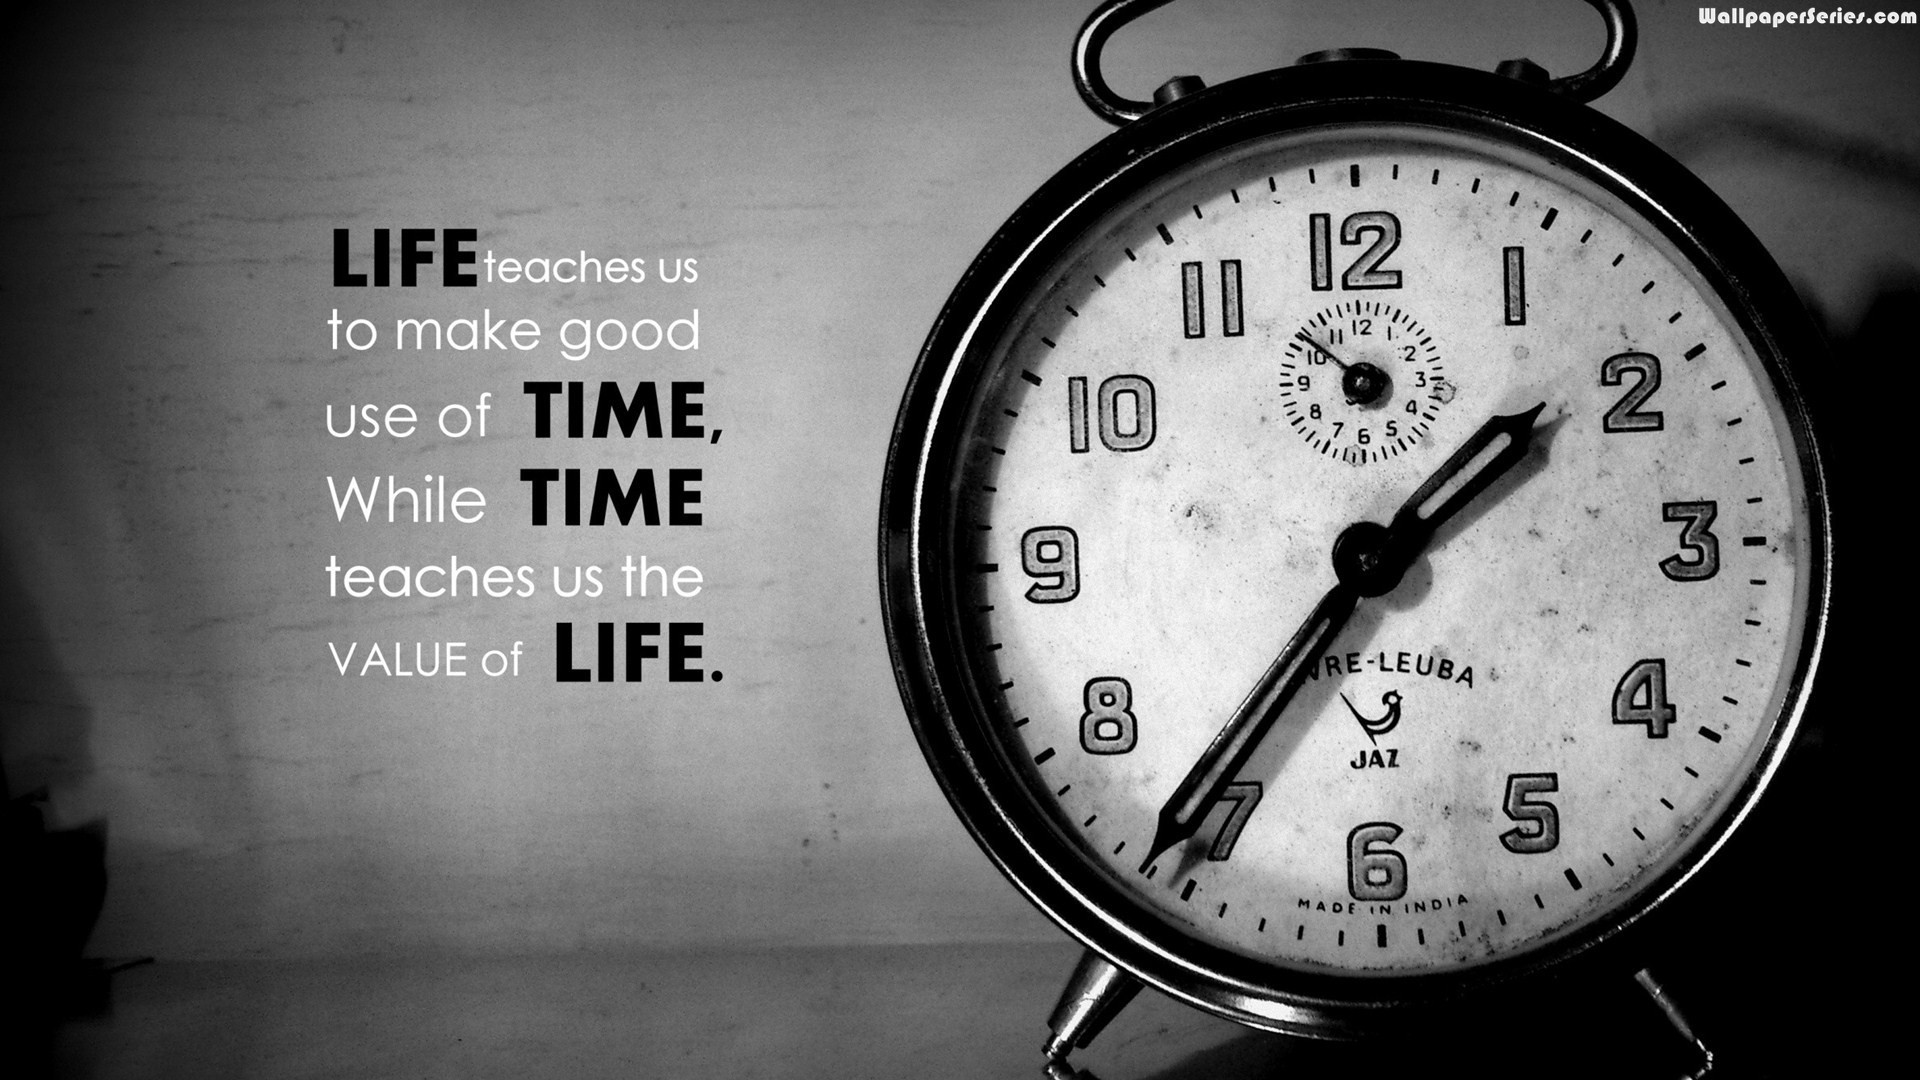 Life Time Quotes Wallpaper 10730   Data-src - Life Thought On Time - HD Wallpaper